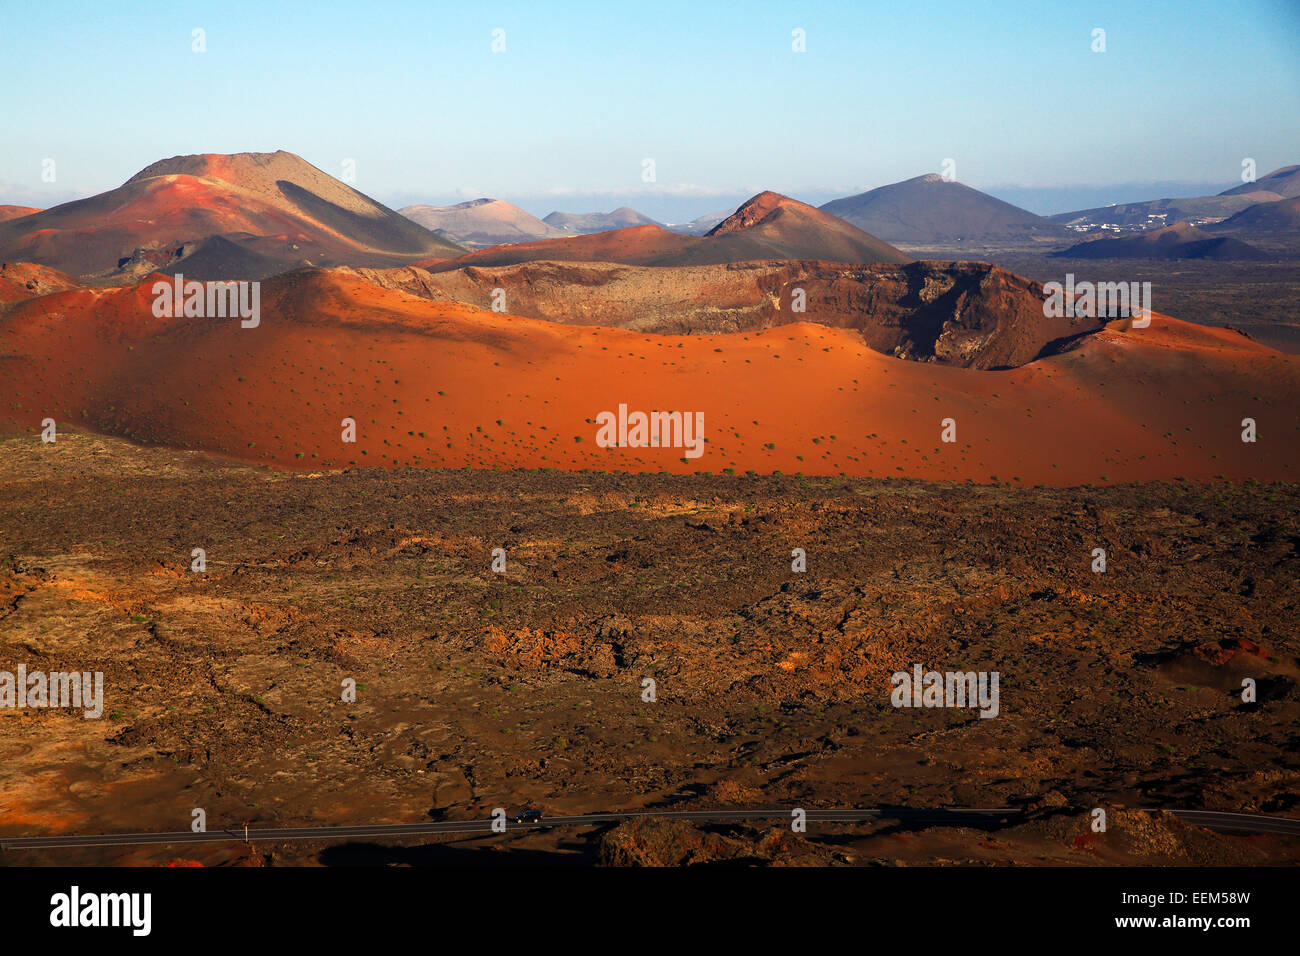 Fire Mountains Montañas Del Fuego Timanfaya National Park Volcanic Stock Photo Alamy